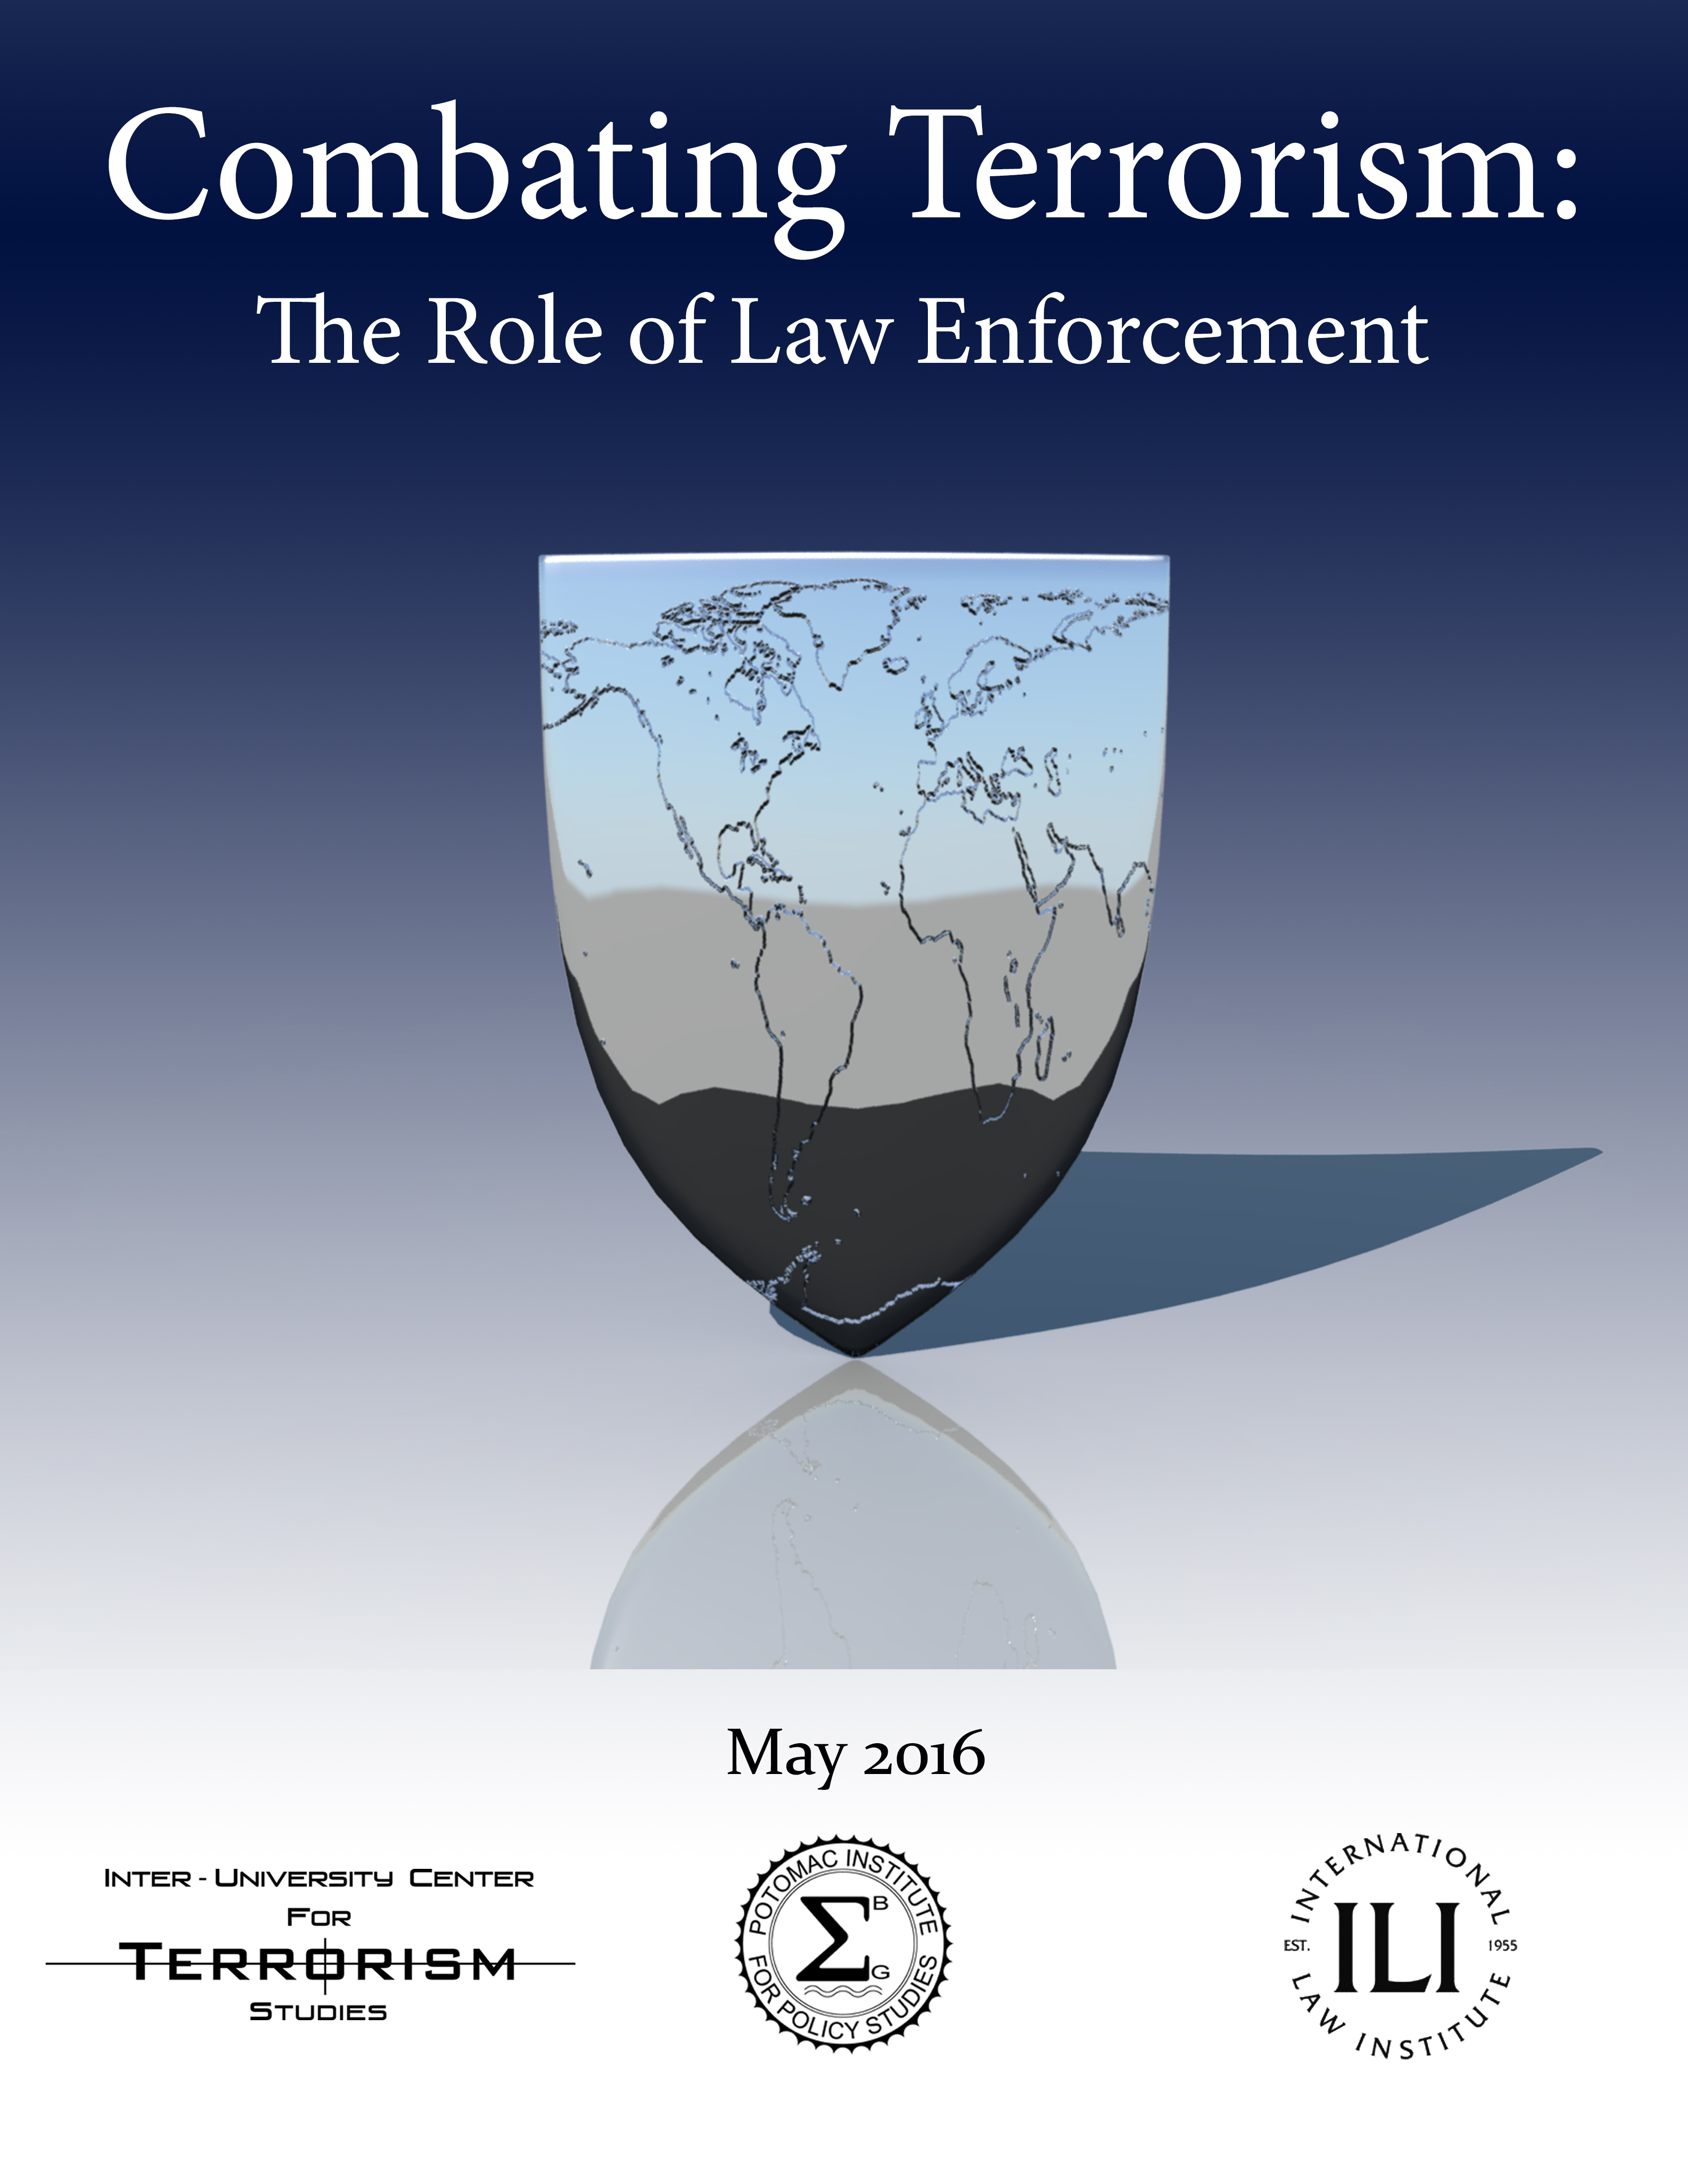 Combating Terrorism: The Role of Law Enforcement